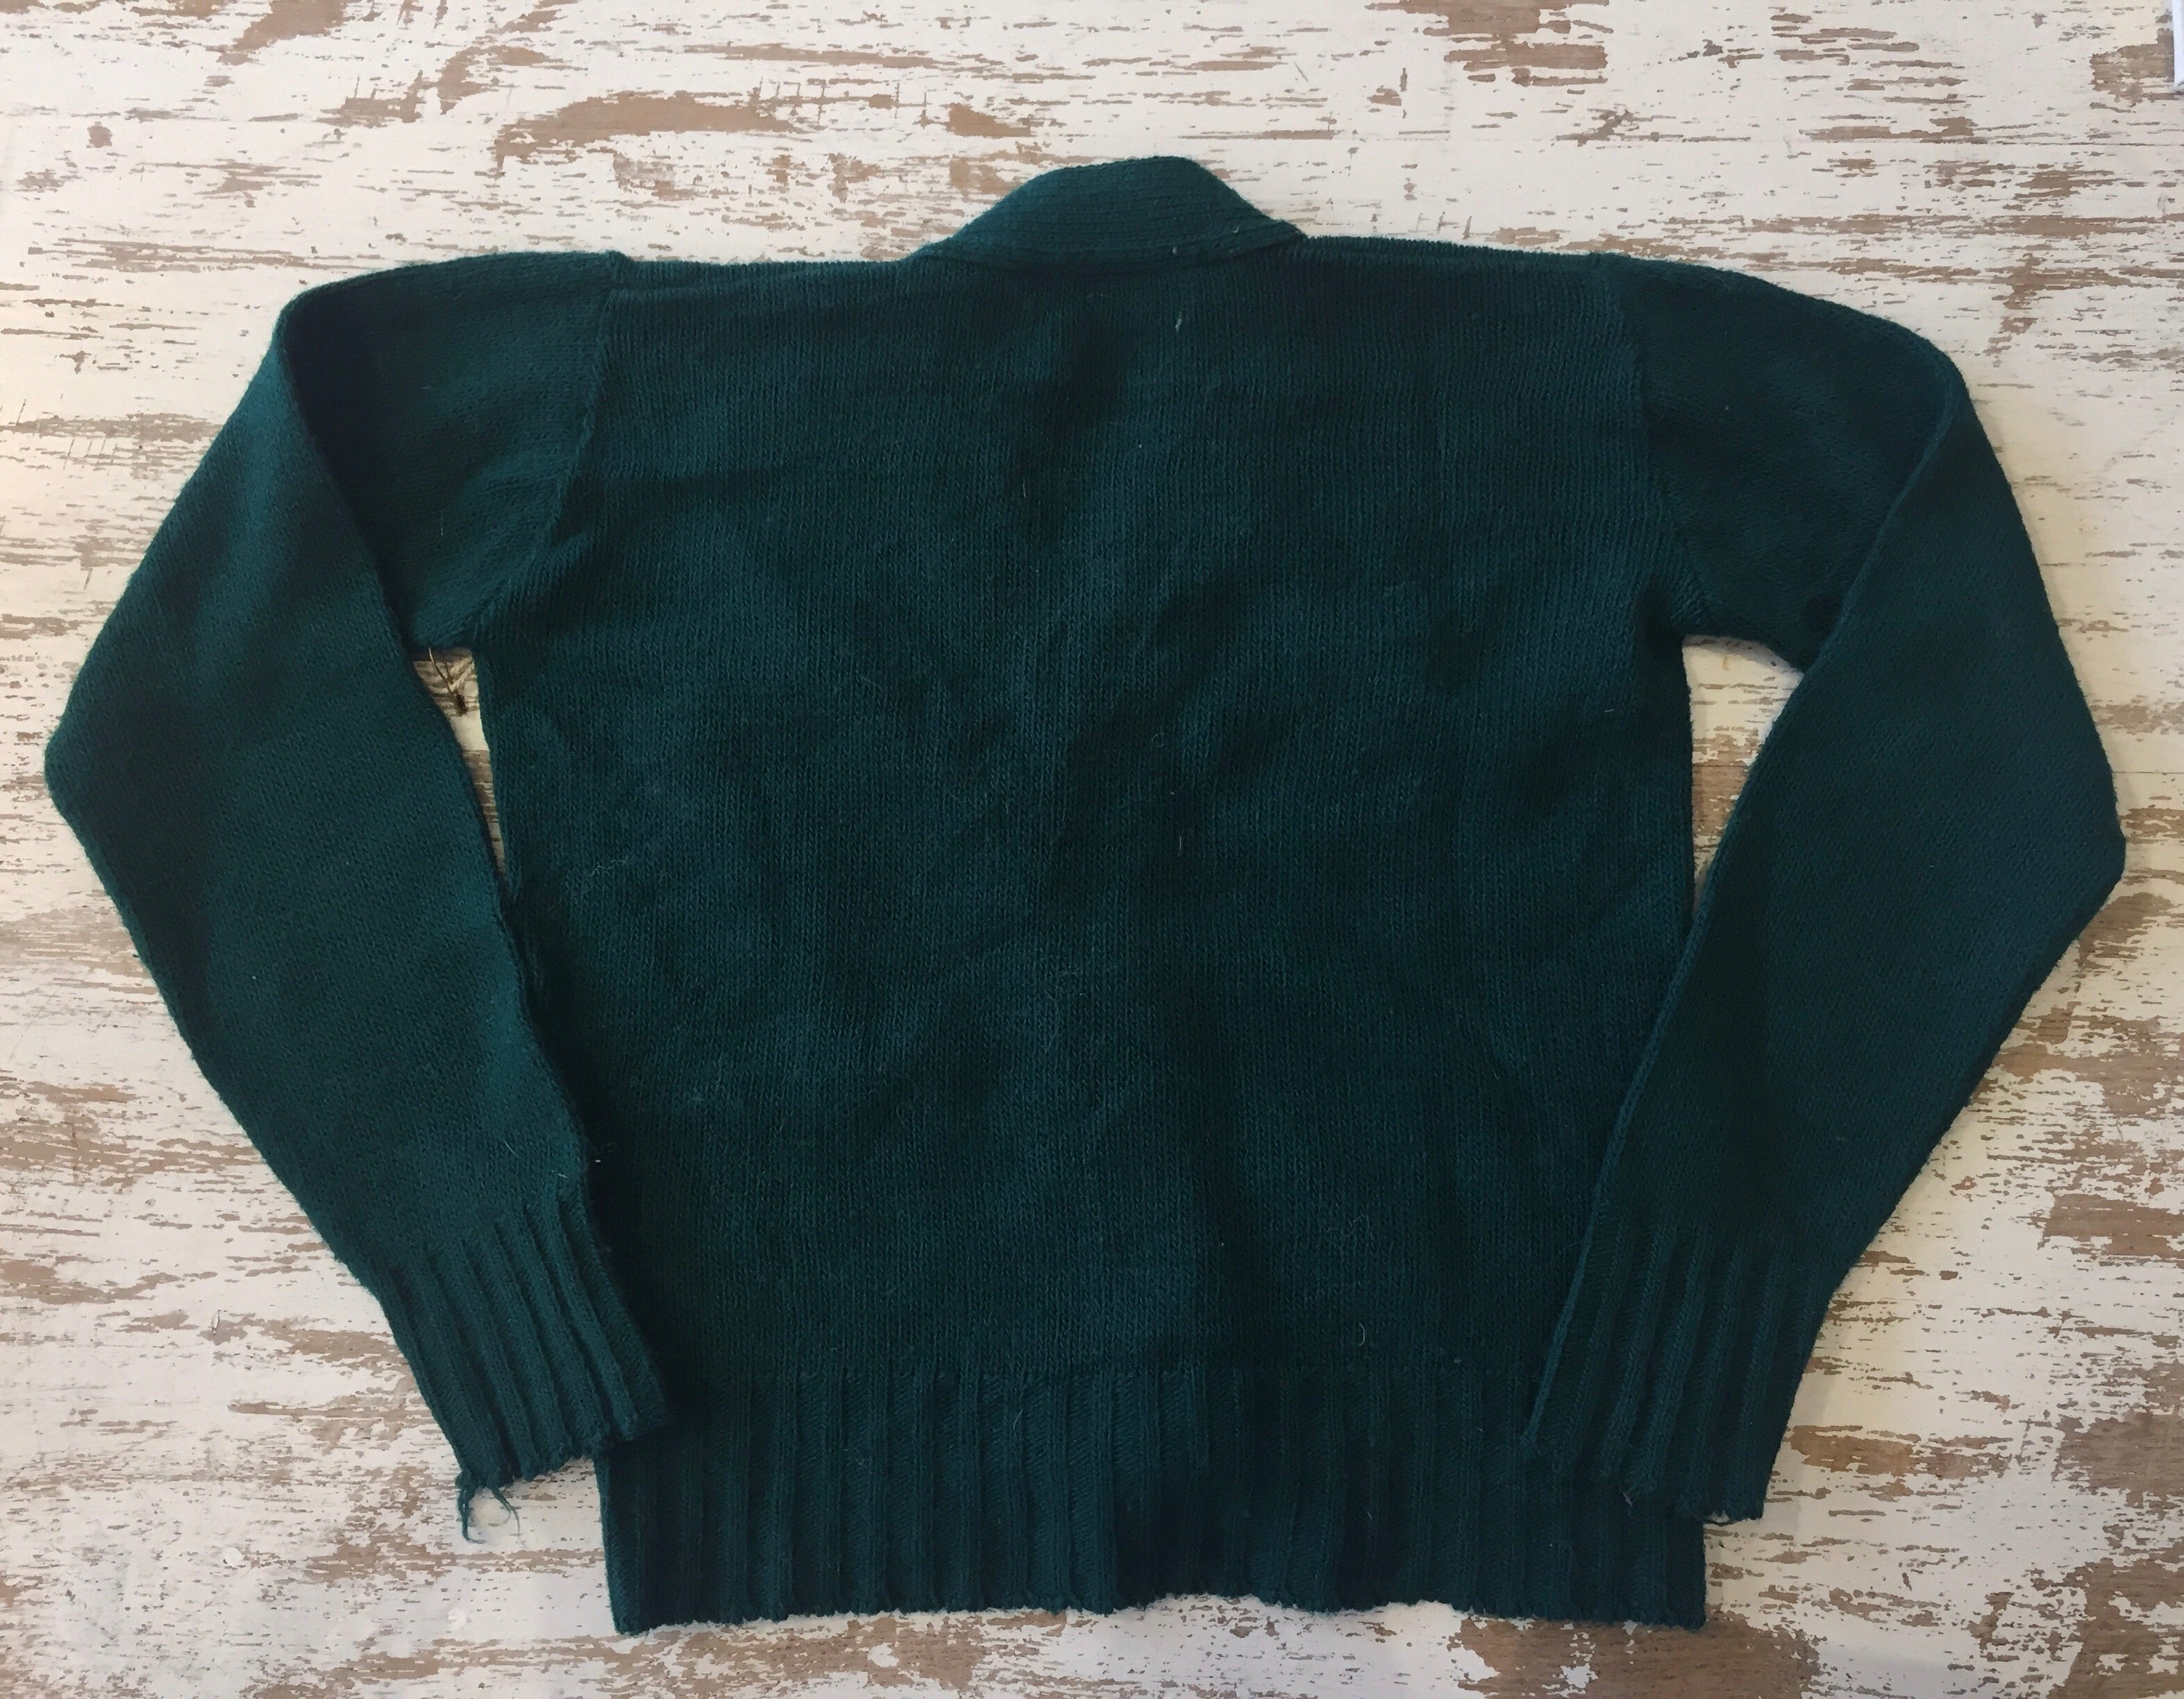 Vintage Children's Green Cardigan